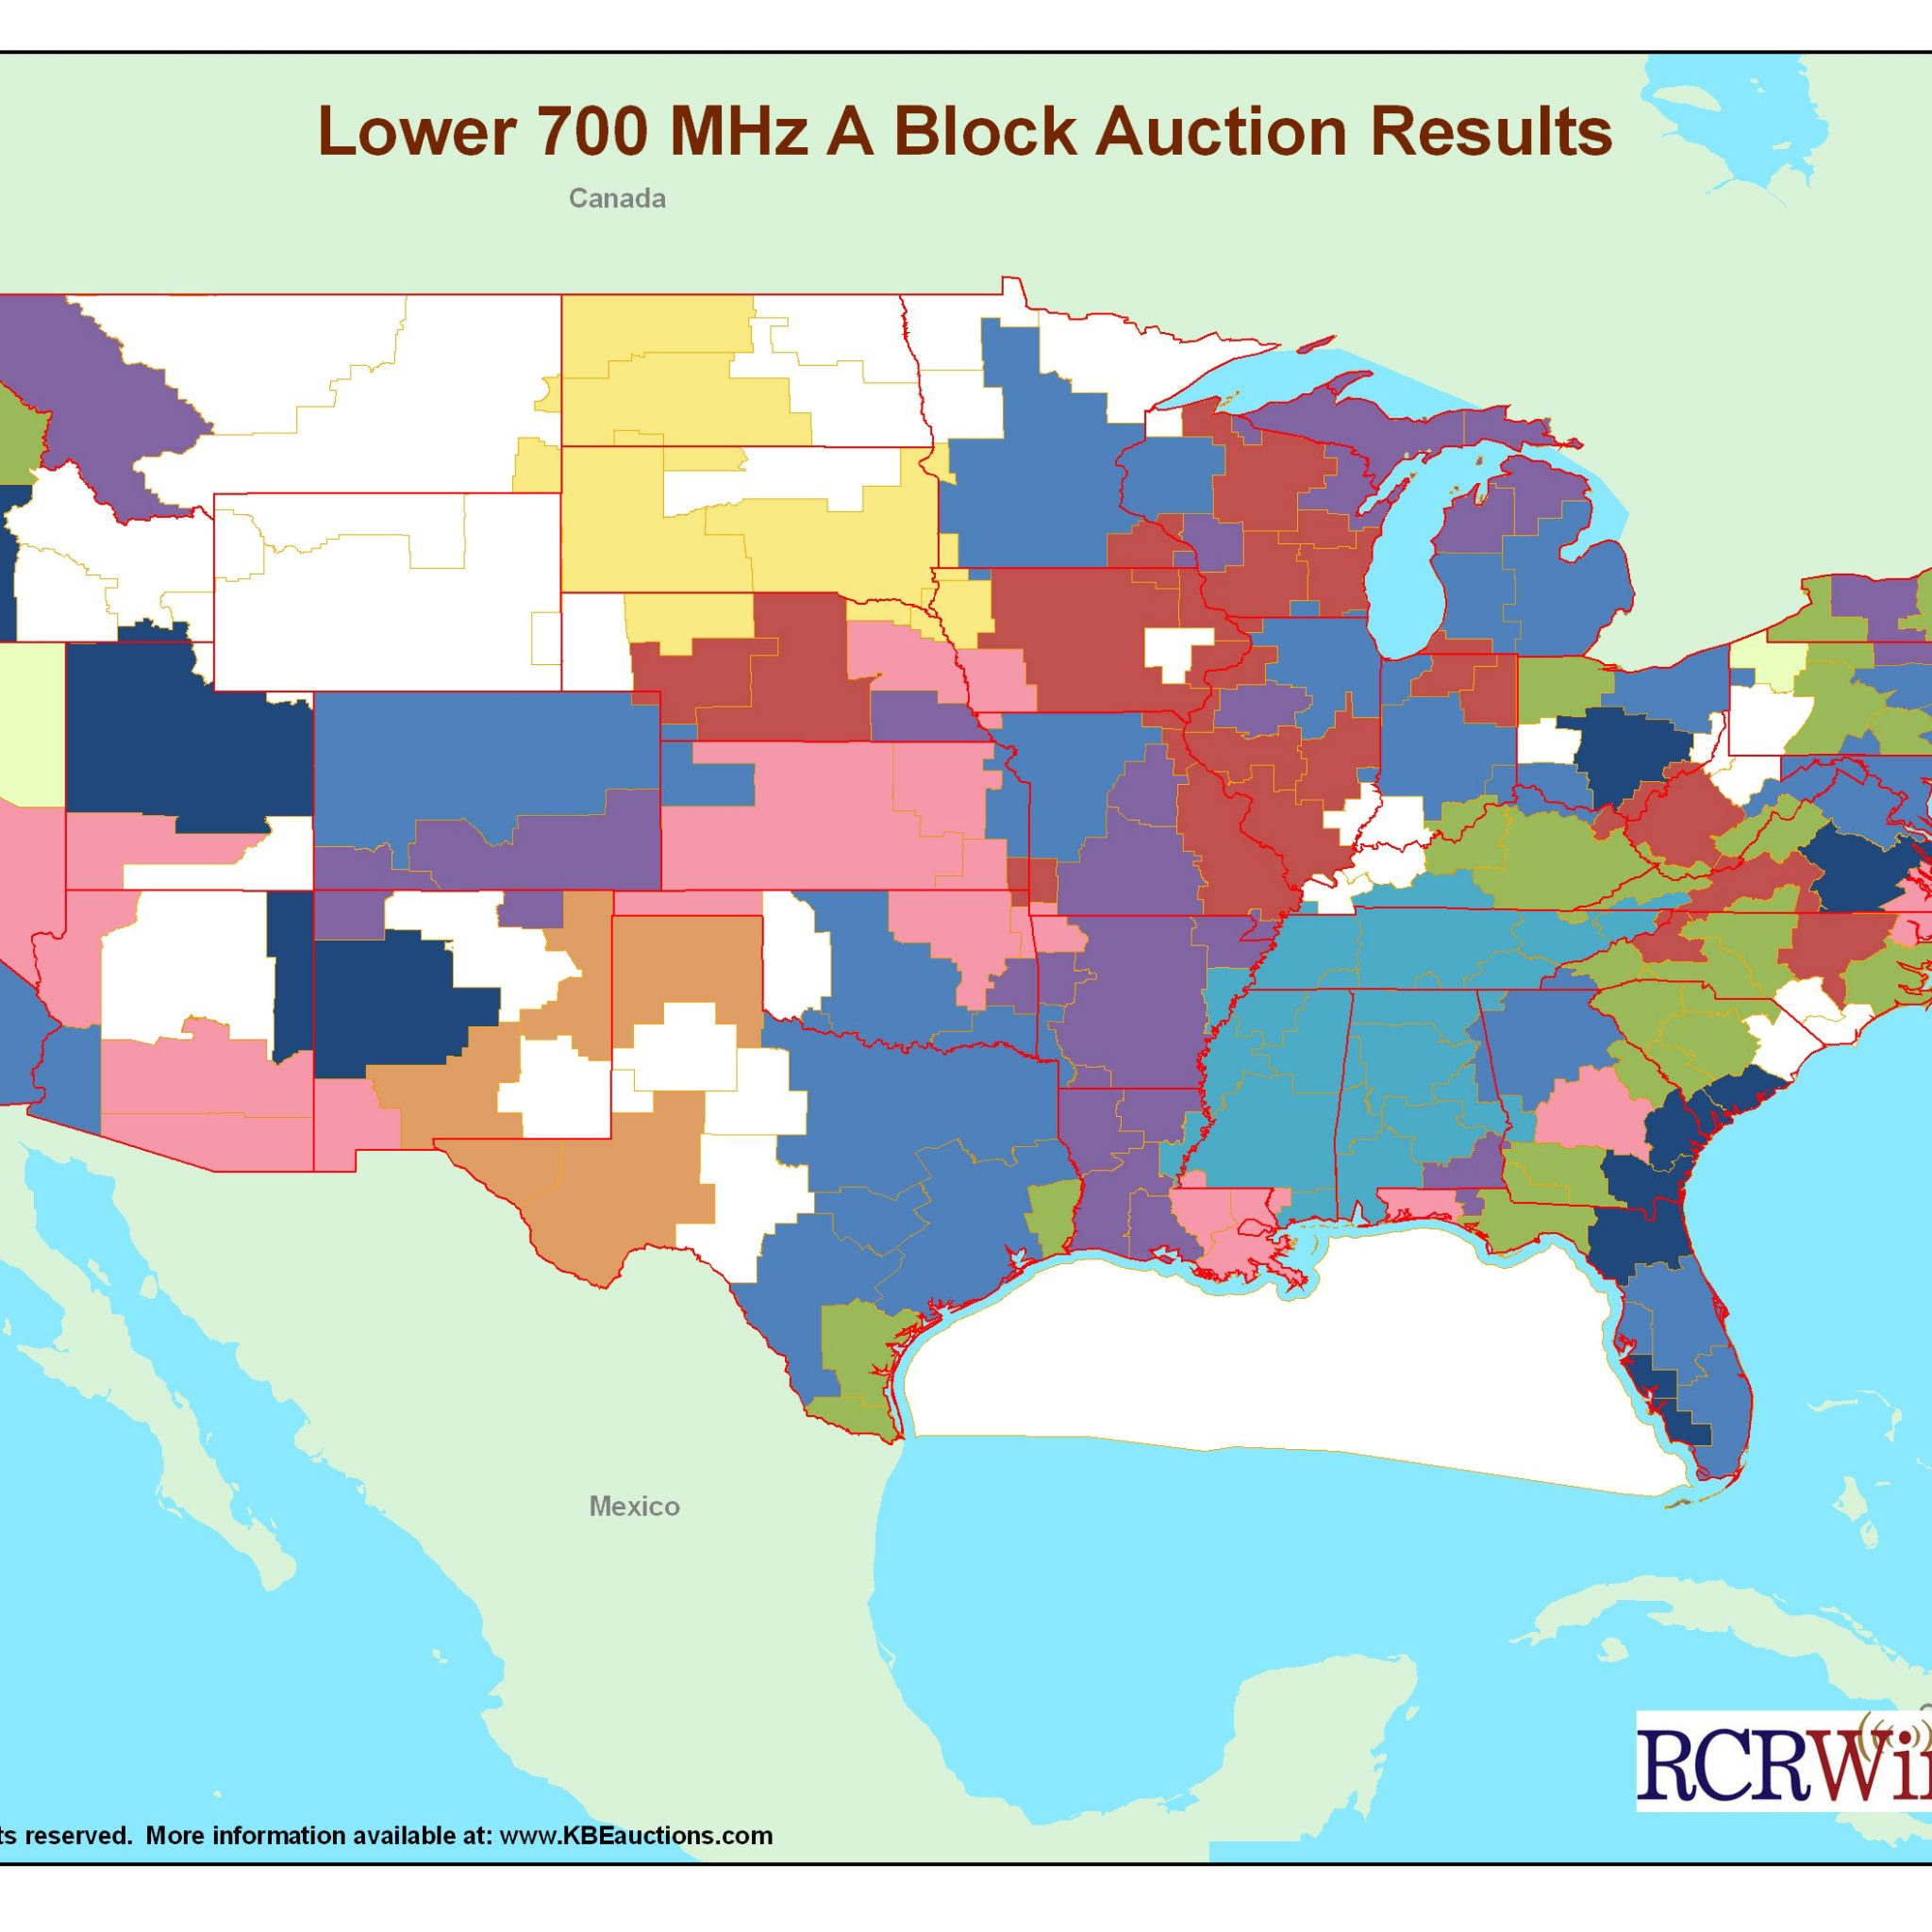 TMobile US Goes Low Verizon Wireless High In Spectrum Swap RCR - Coverage map for us cellular